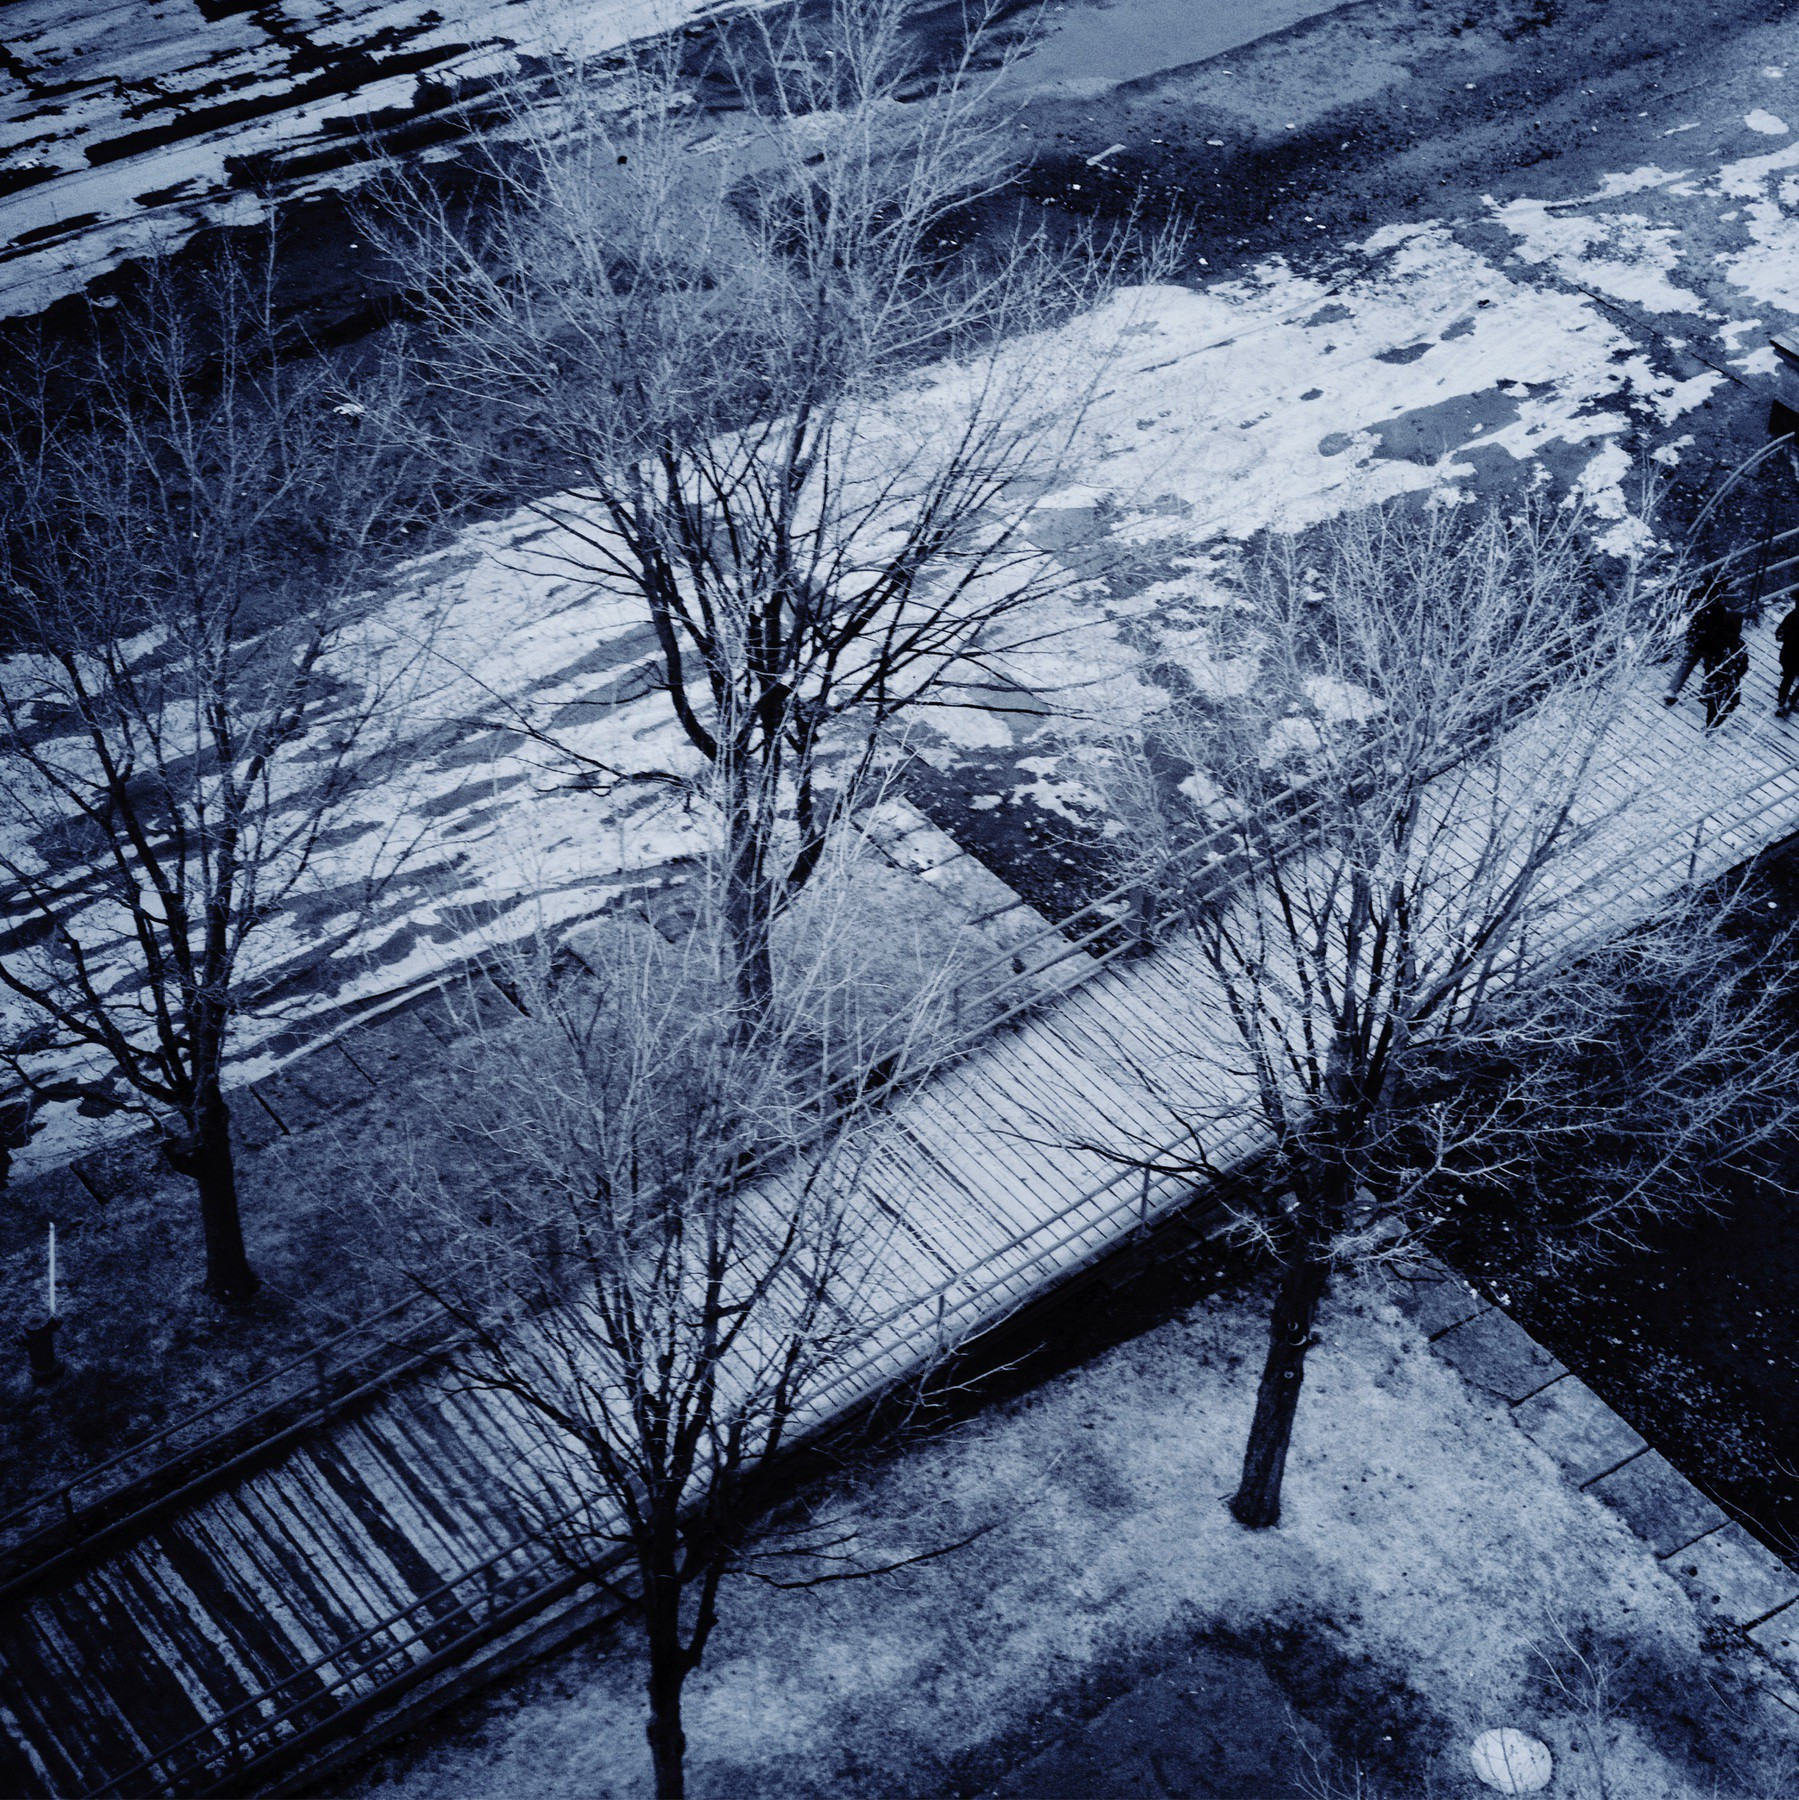 Aerial view of winter trees and wooden walkway in Montreal.